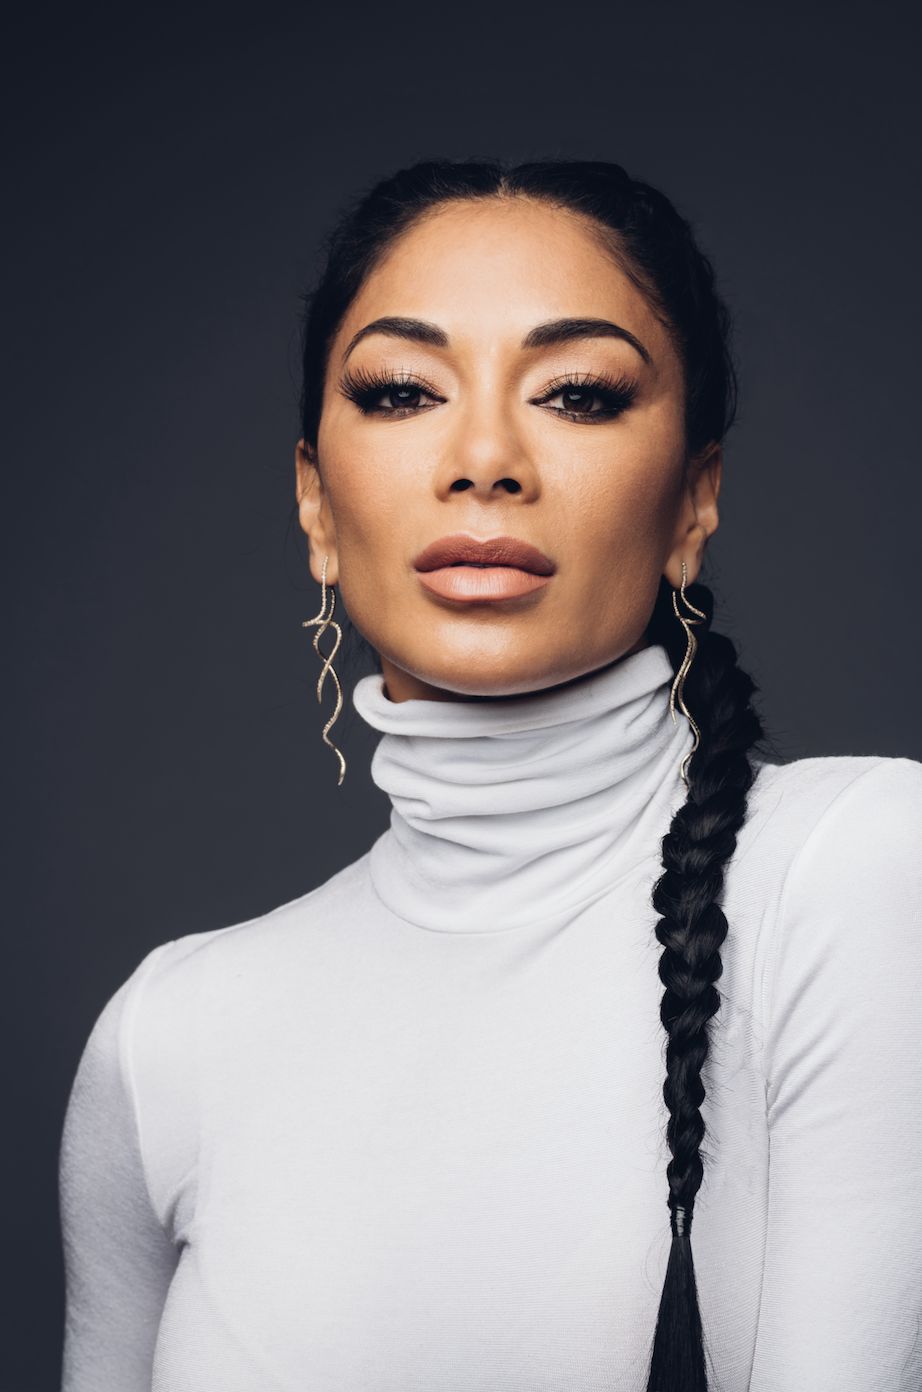 With the first season of  The Masked Singer  underway, we got Nicole Scherzinger to sit down and answer some of YOUR burning questions about the wildly popular new show.